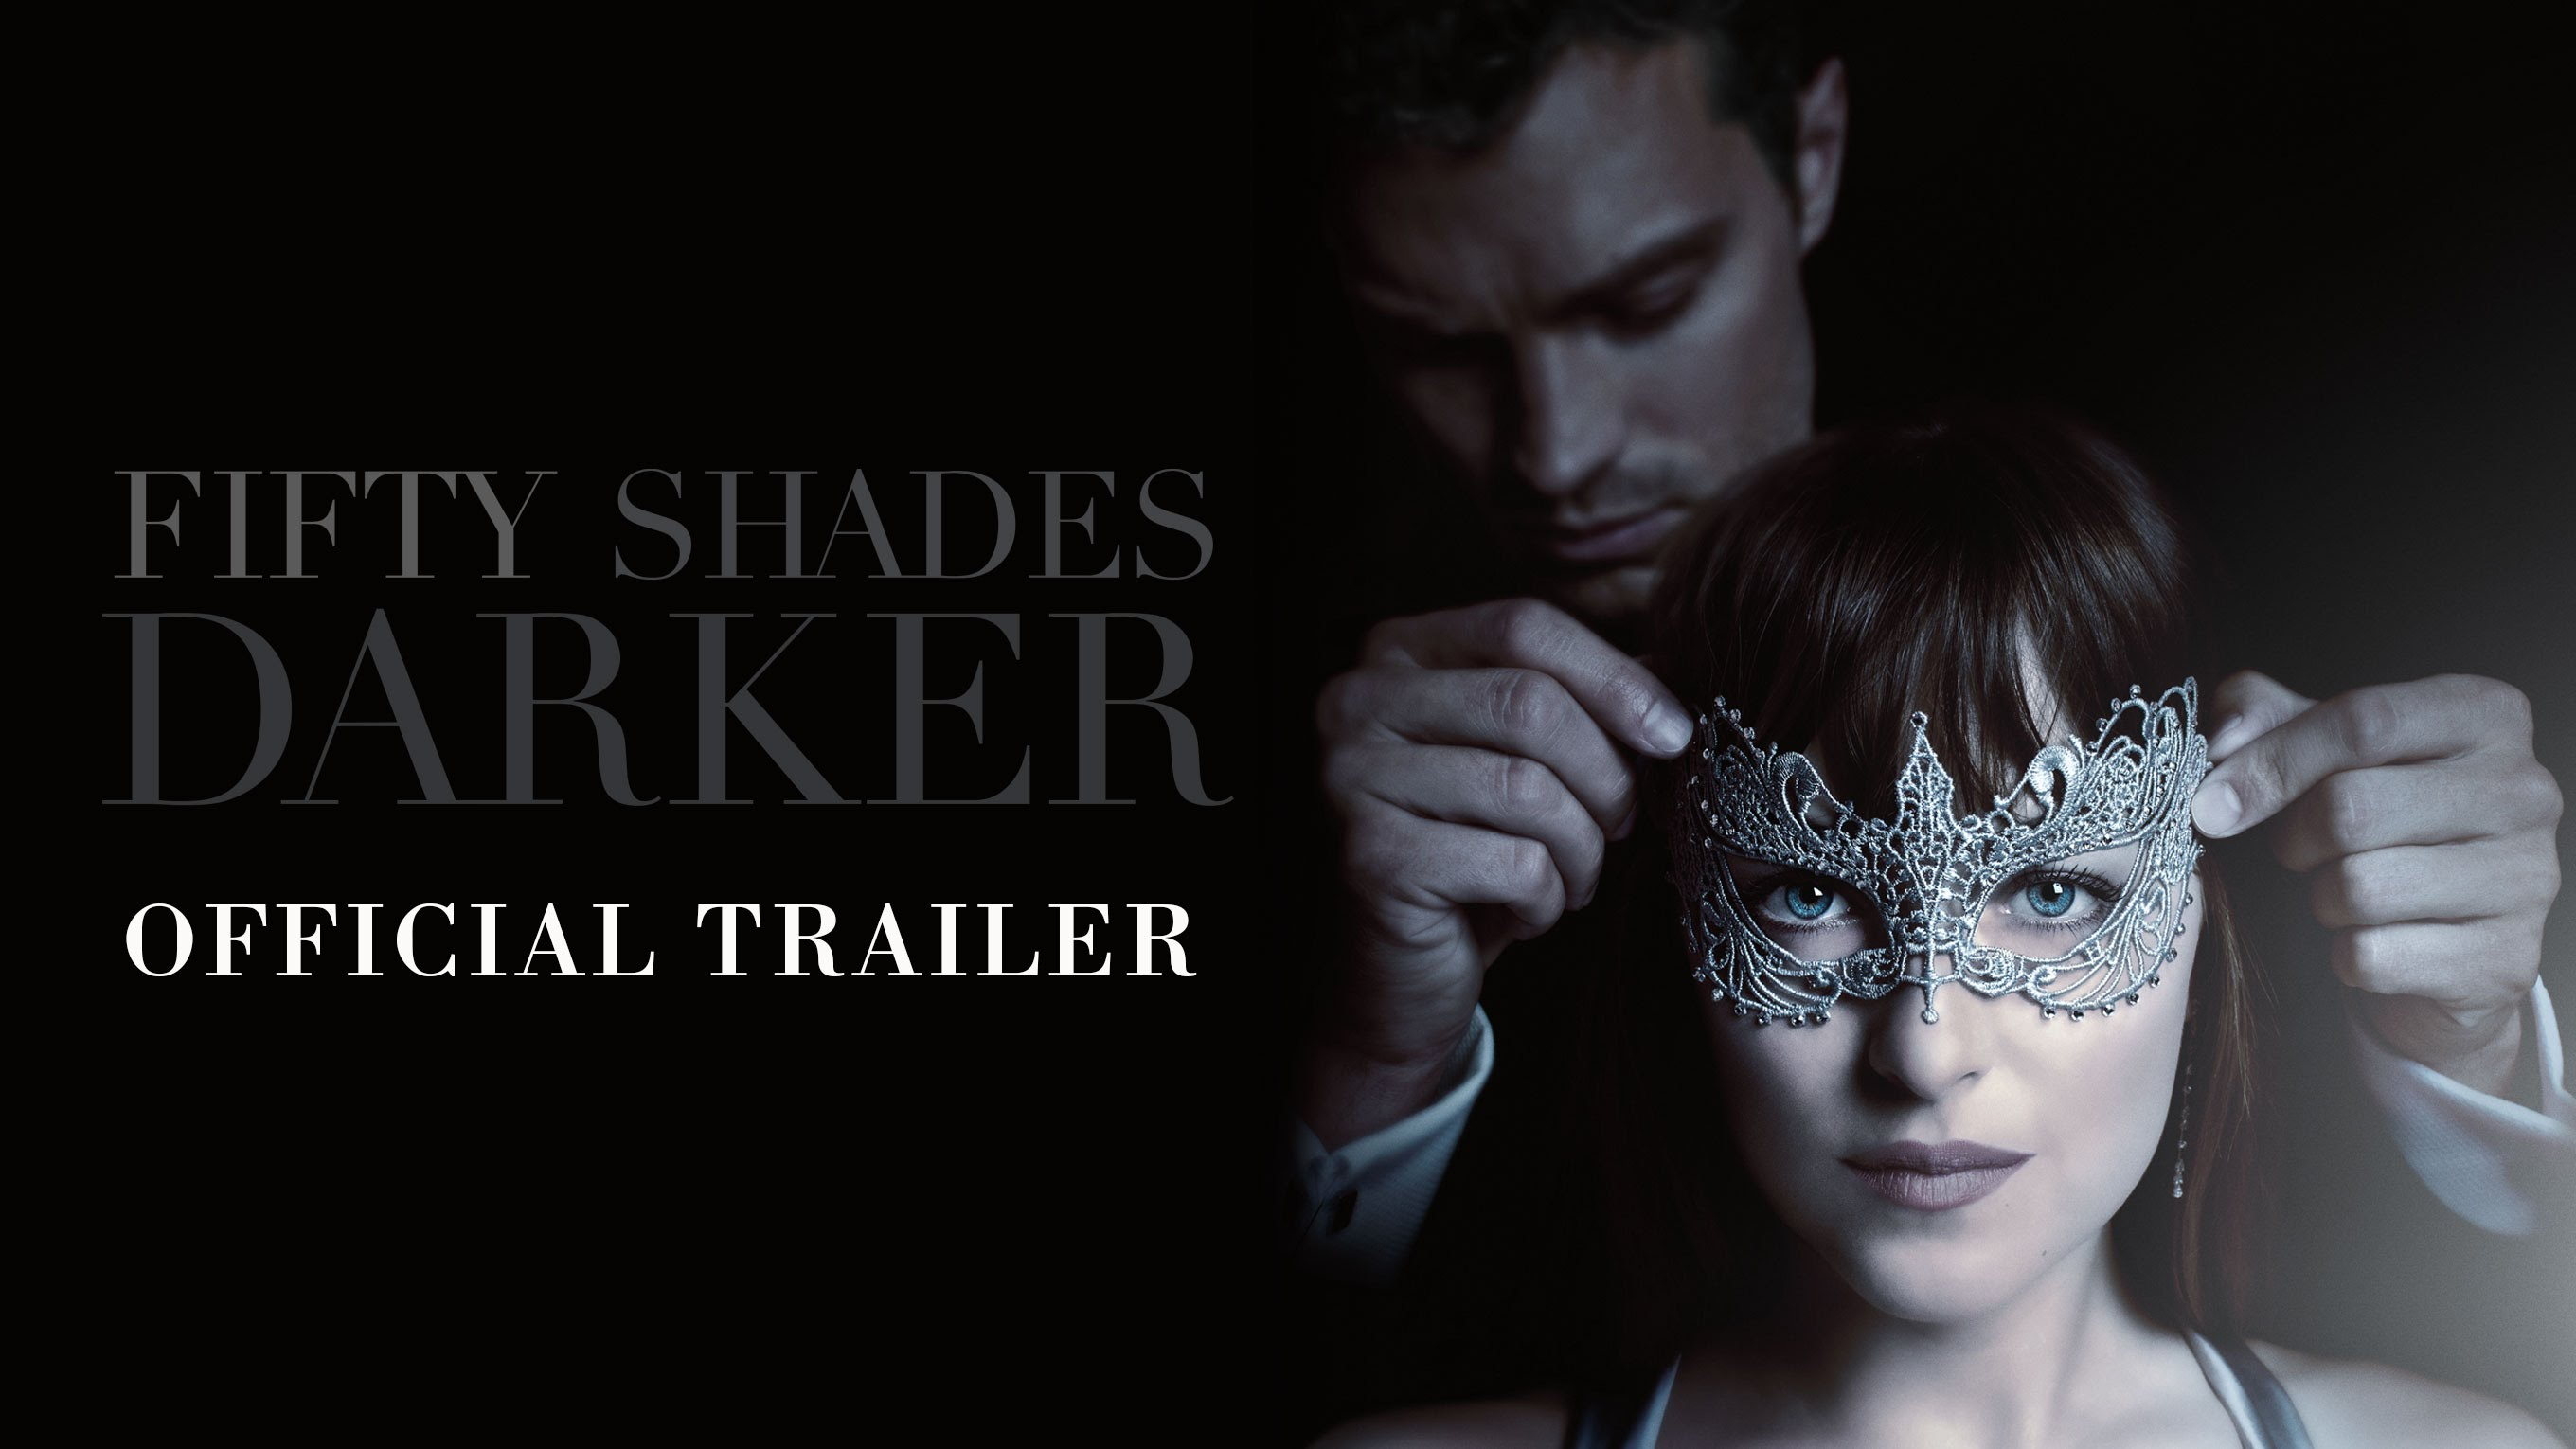 fifty shades darker full movie watch online free putlockers